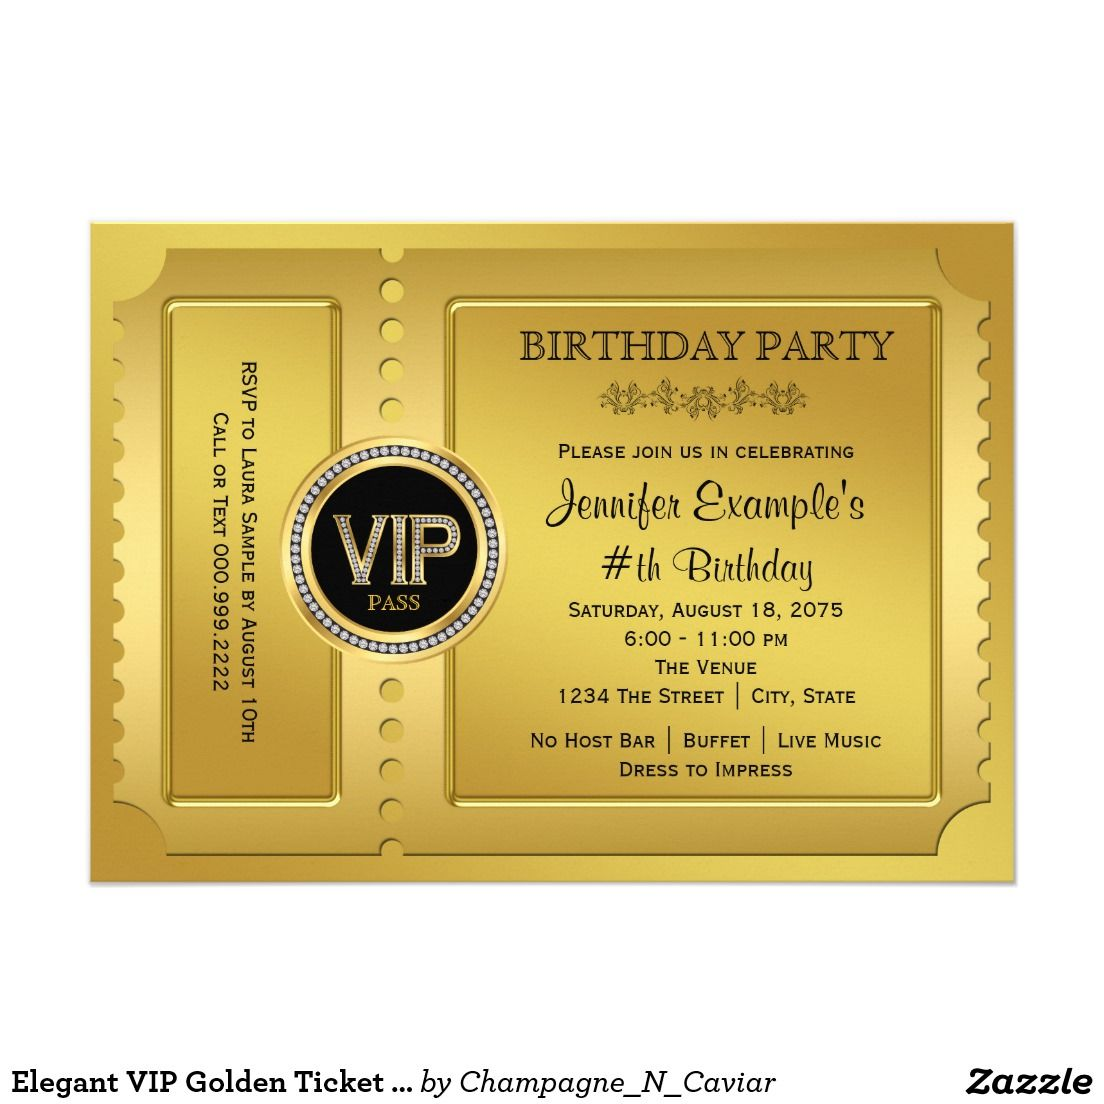 Elegant VIP Golden Ticket Birthday Party Card | Golden ticket ...